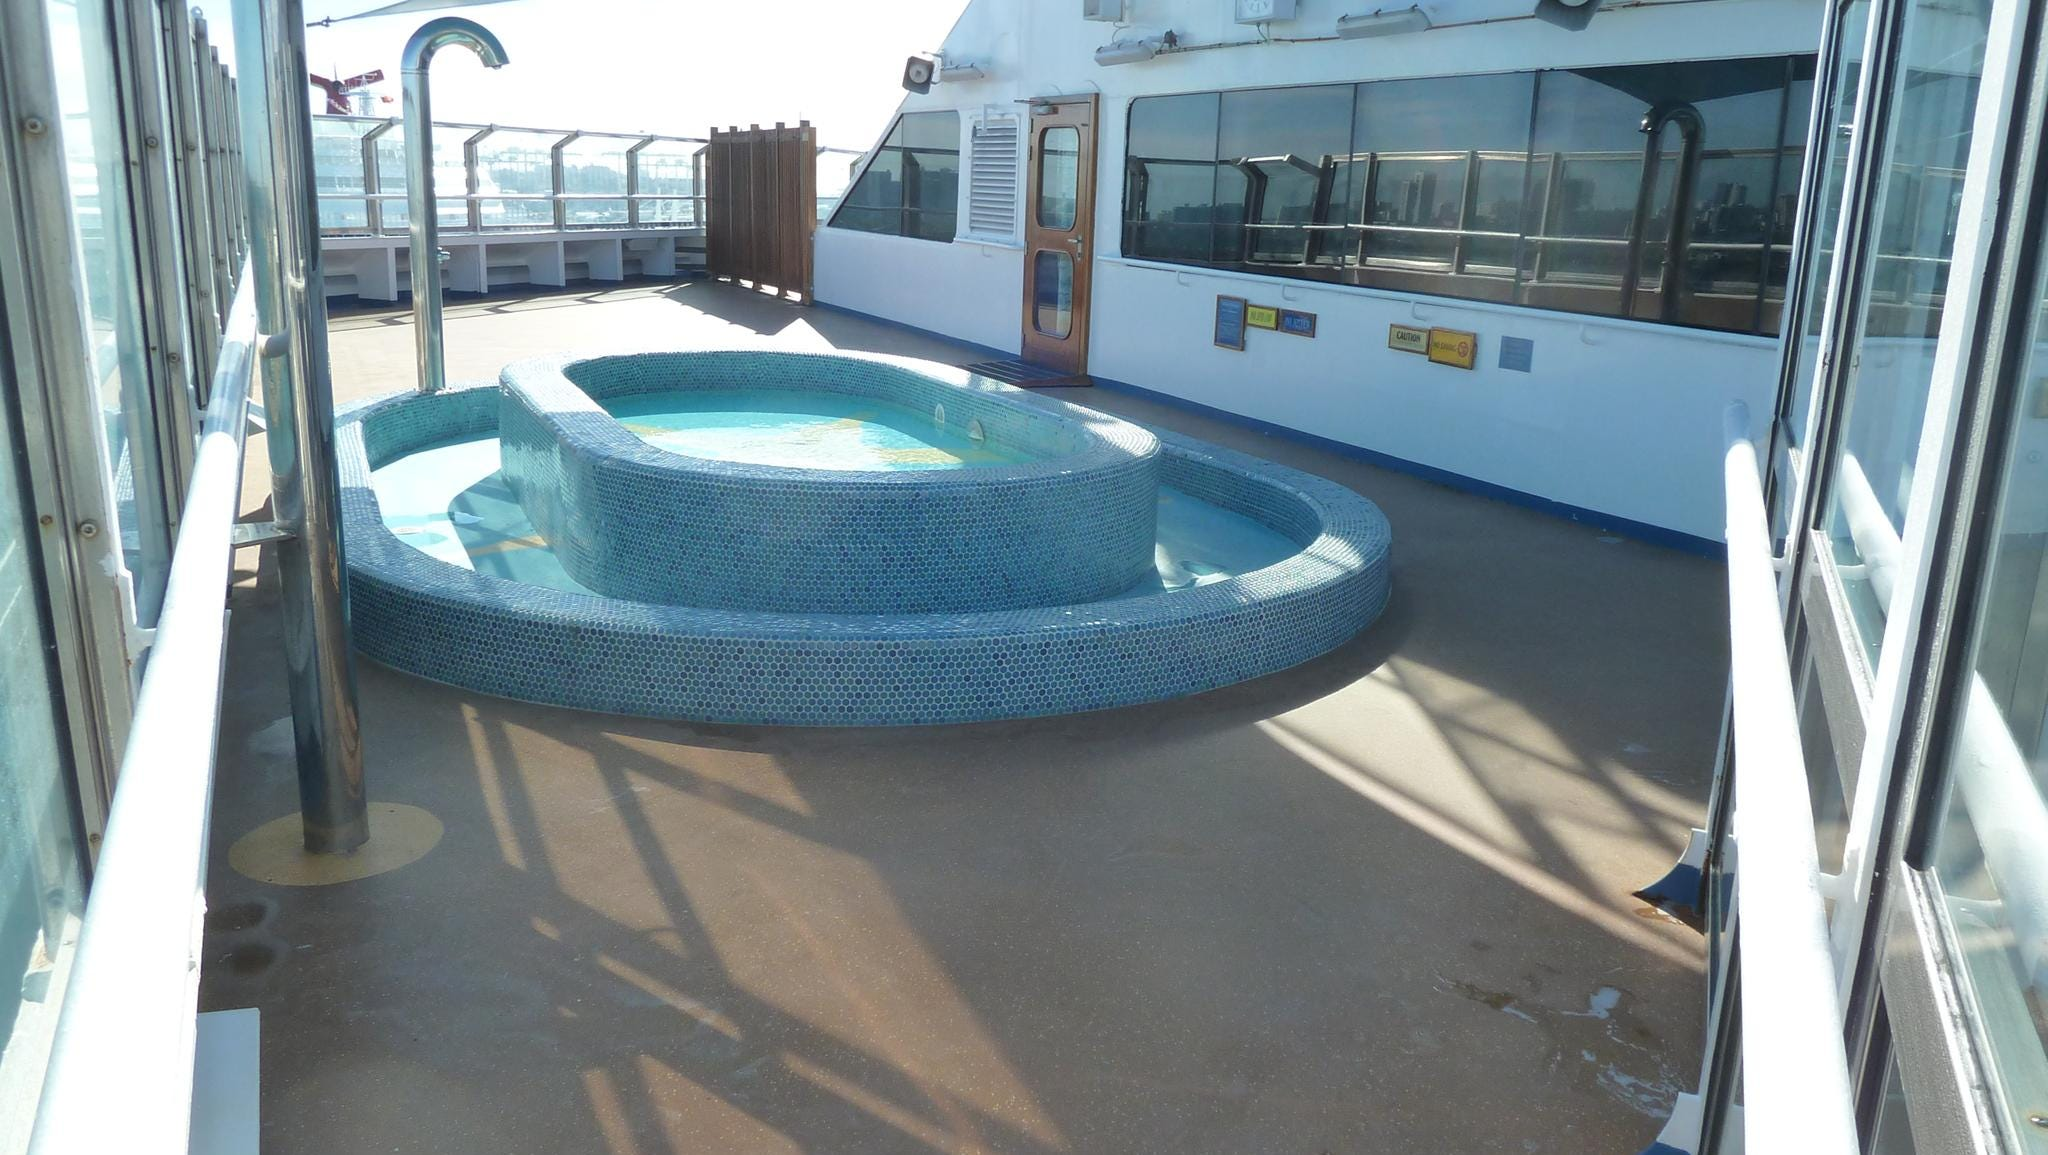 A glass-enclosed terrace on port Deck 12 has a children's paddling pool.